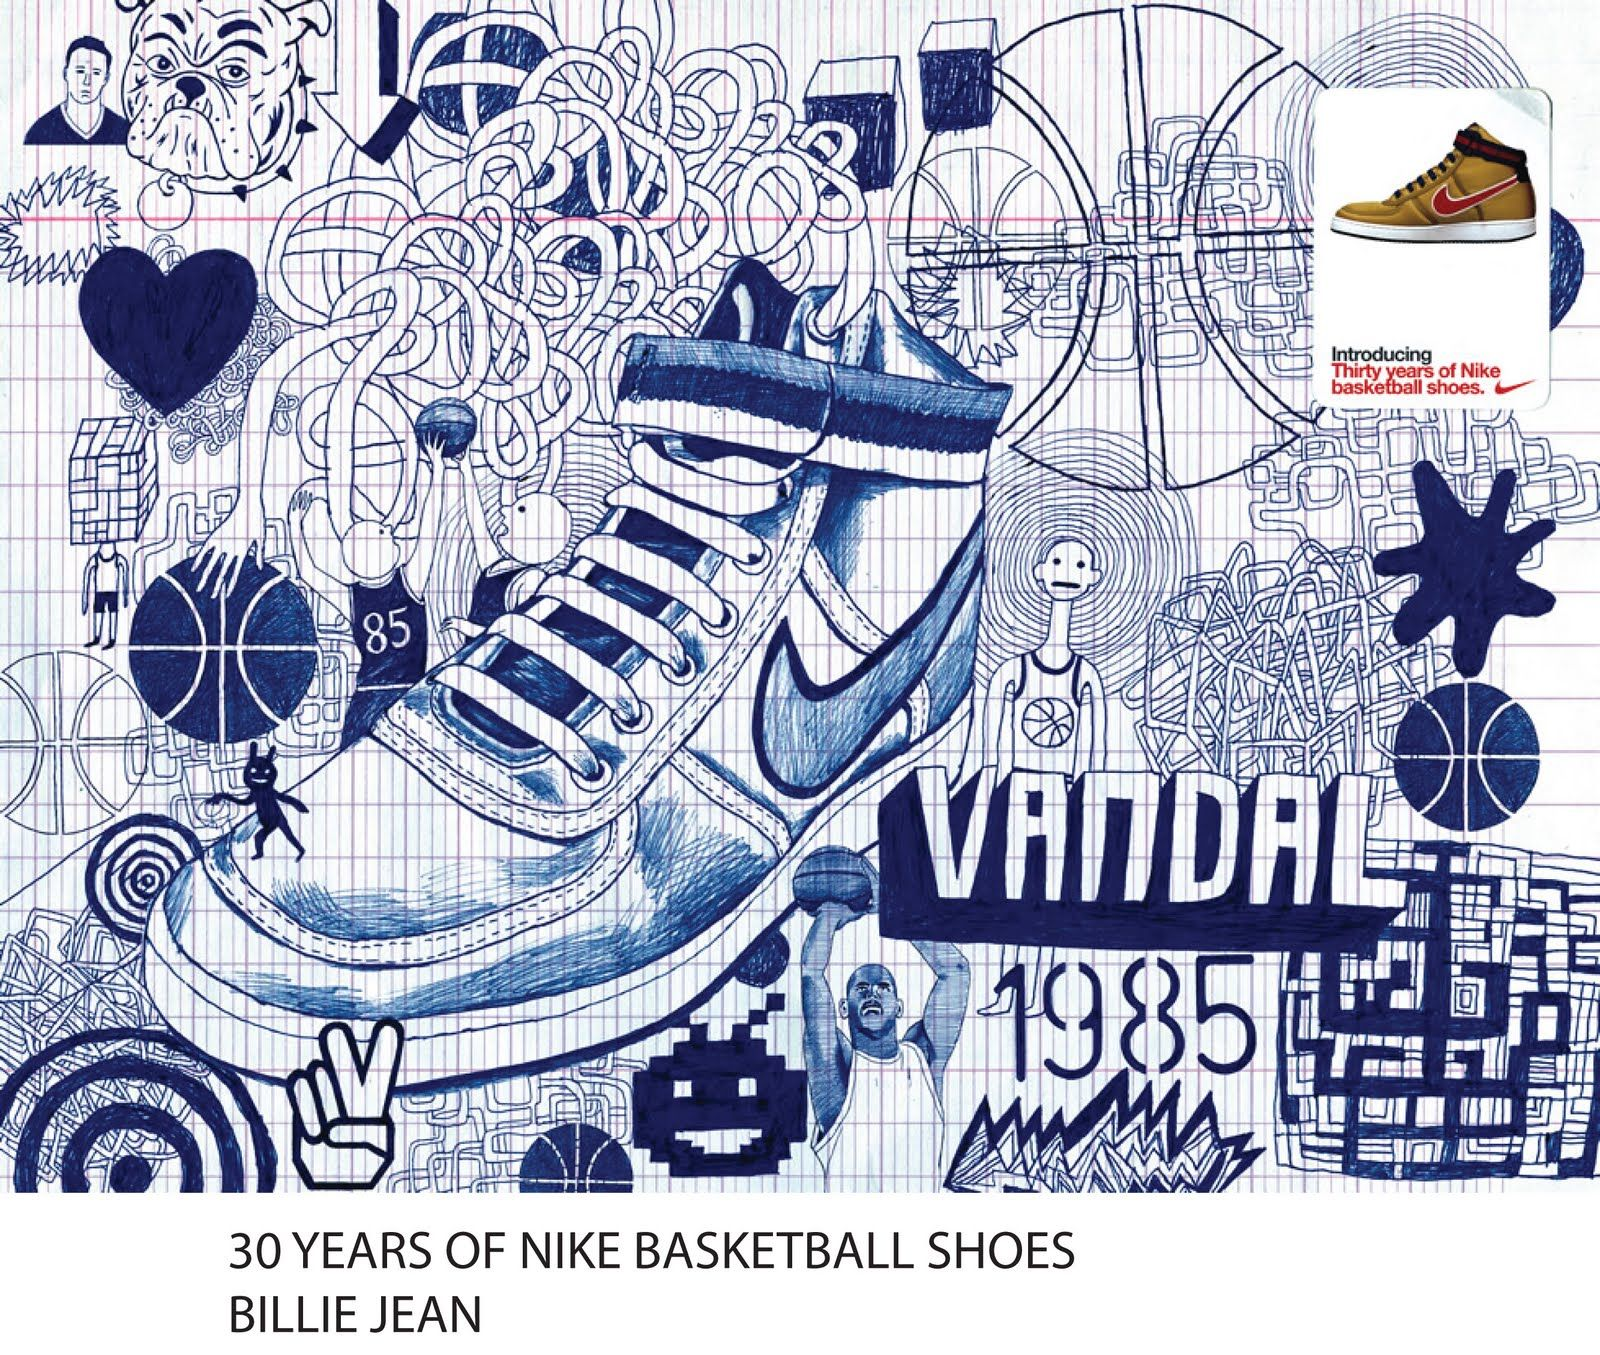 Poster design jeans - Billie Jeans Advertisement Poster For Nike Basketball Shoes